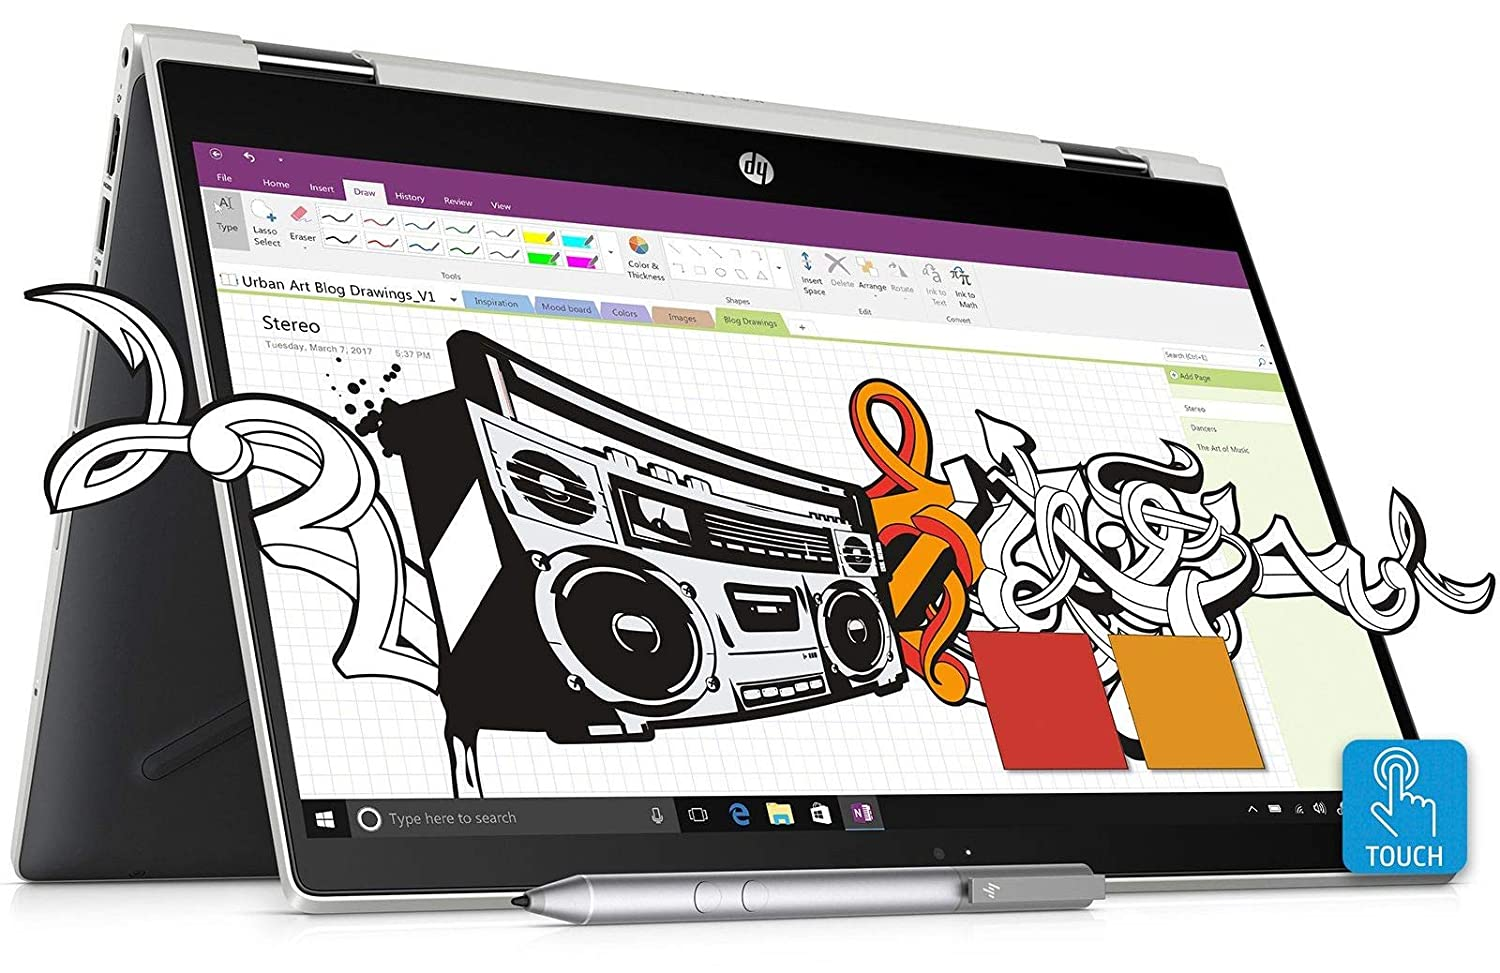 HP Pavilion x360 Core i5 8th Gen 14-inch Touchscreen 2-in-1 FHD Laptop